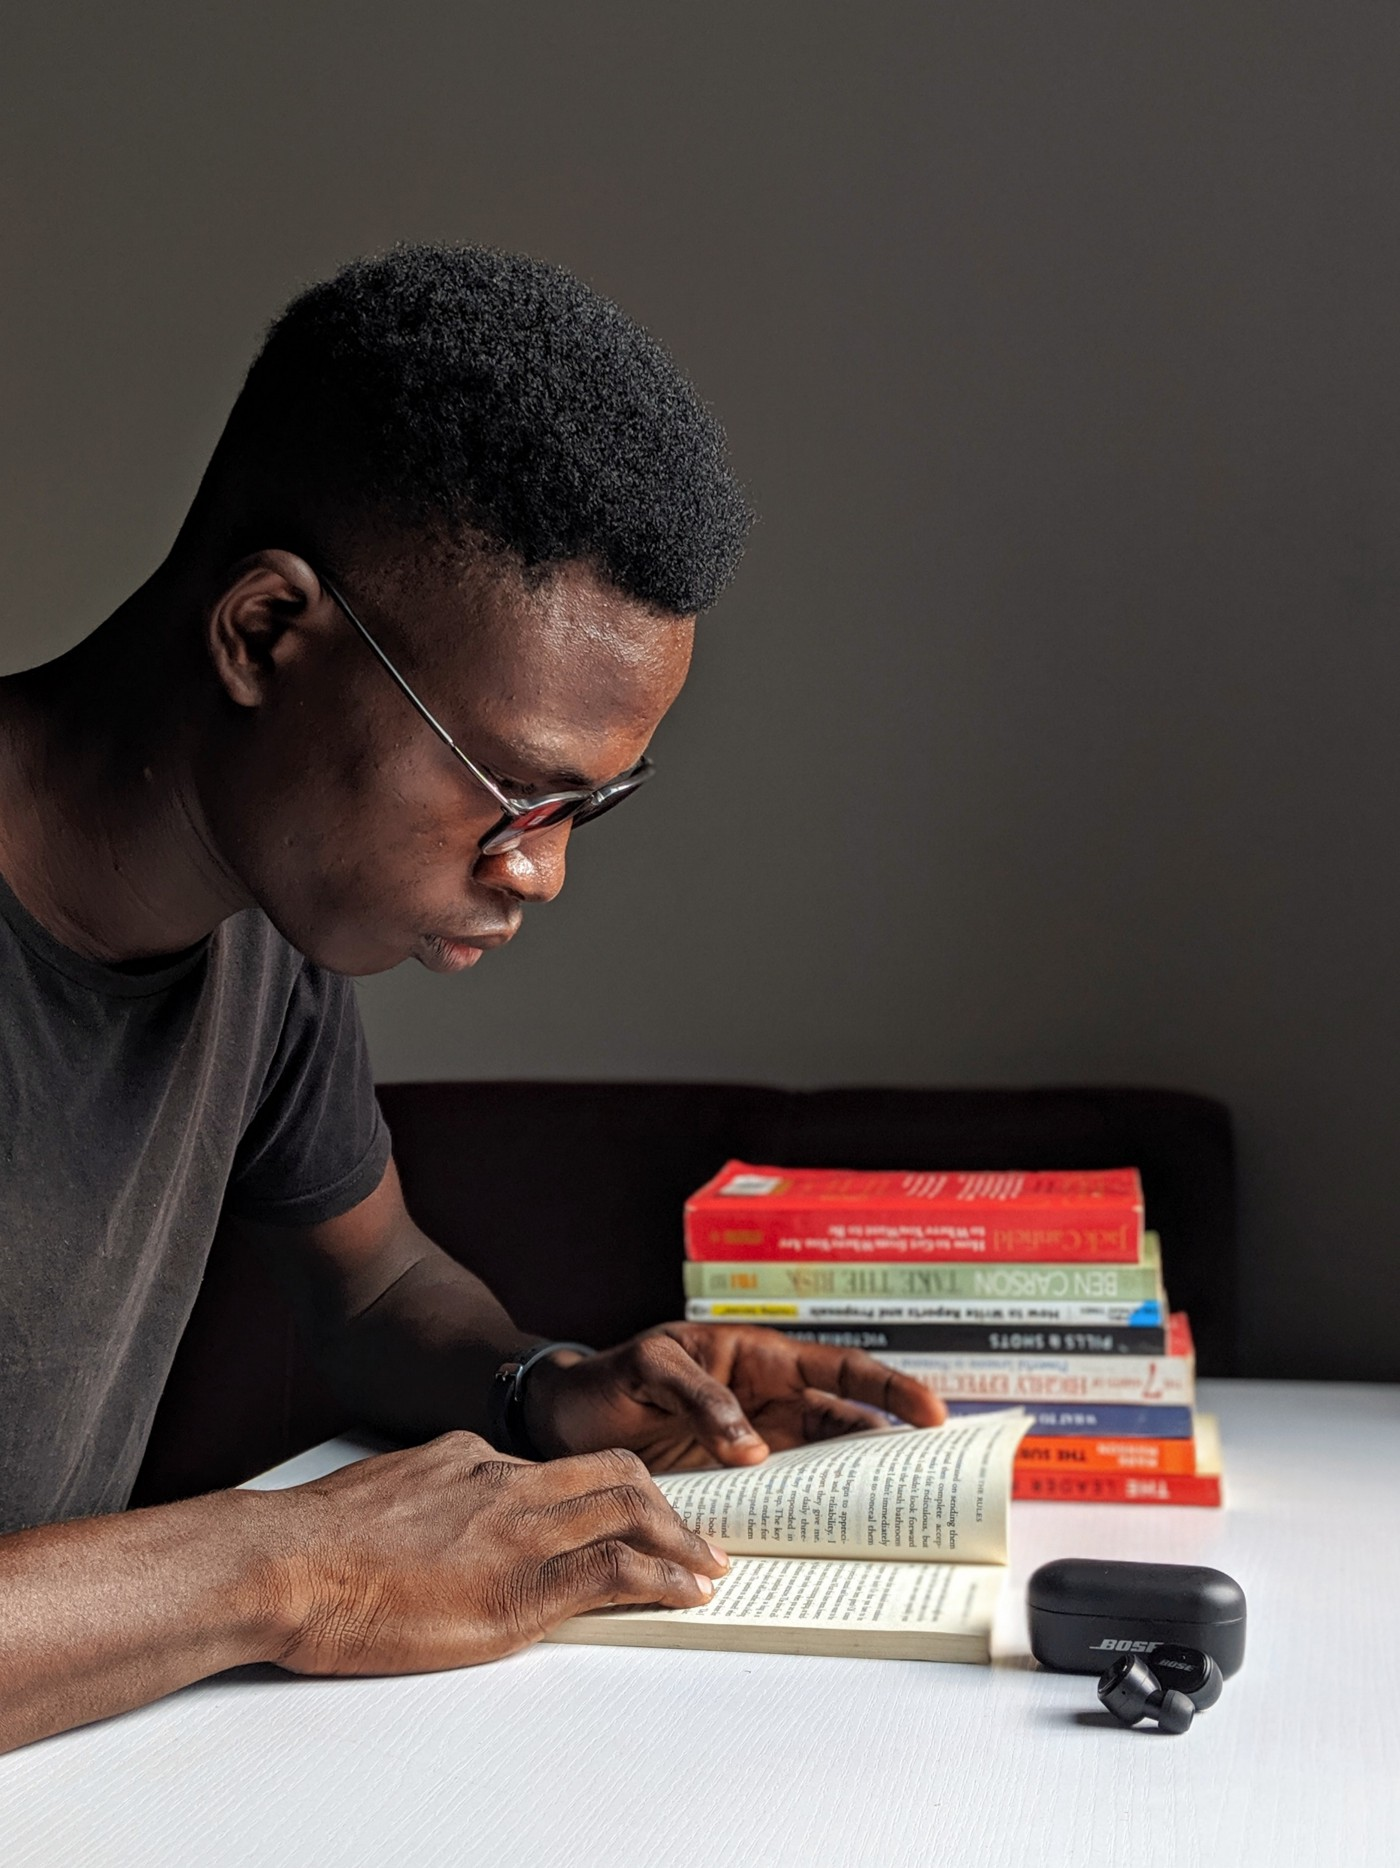 A Black man reading a book at a desk with another stack of books beside him.